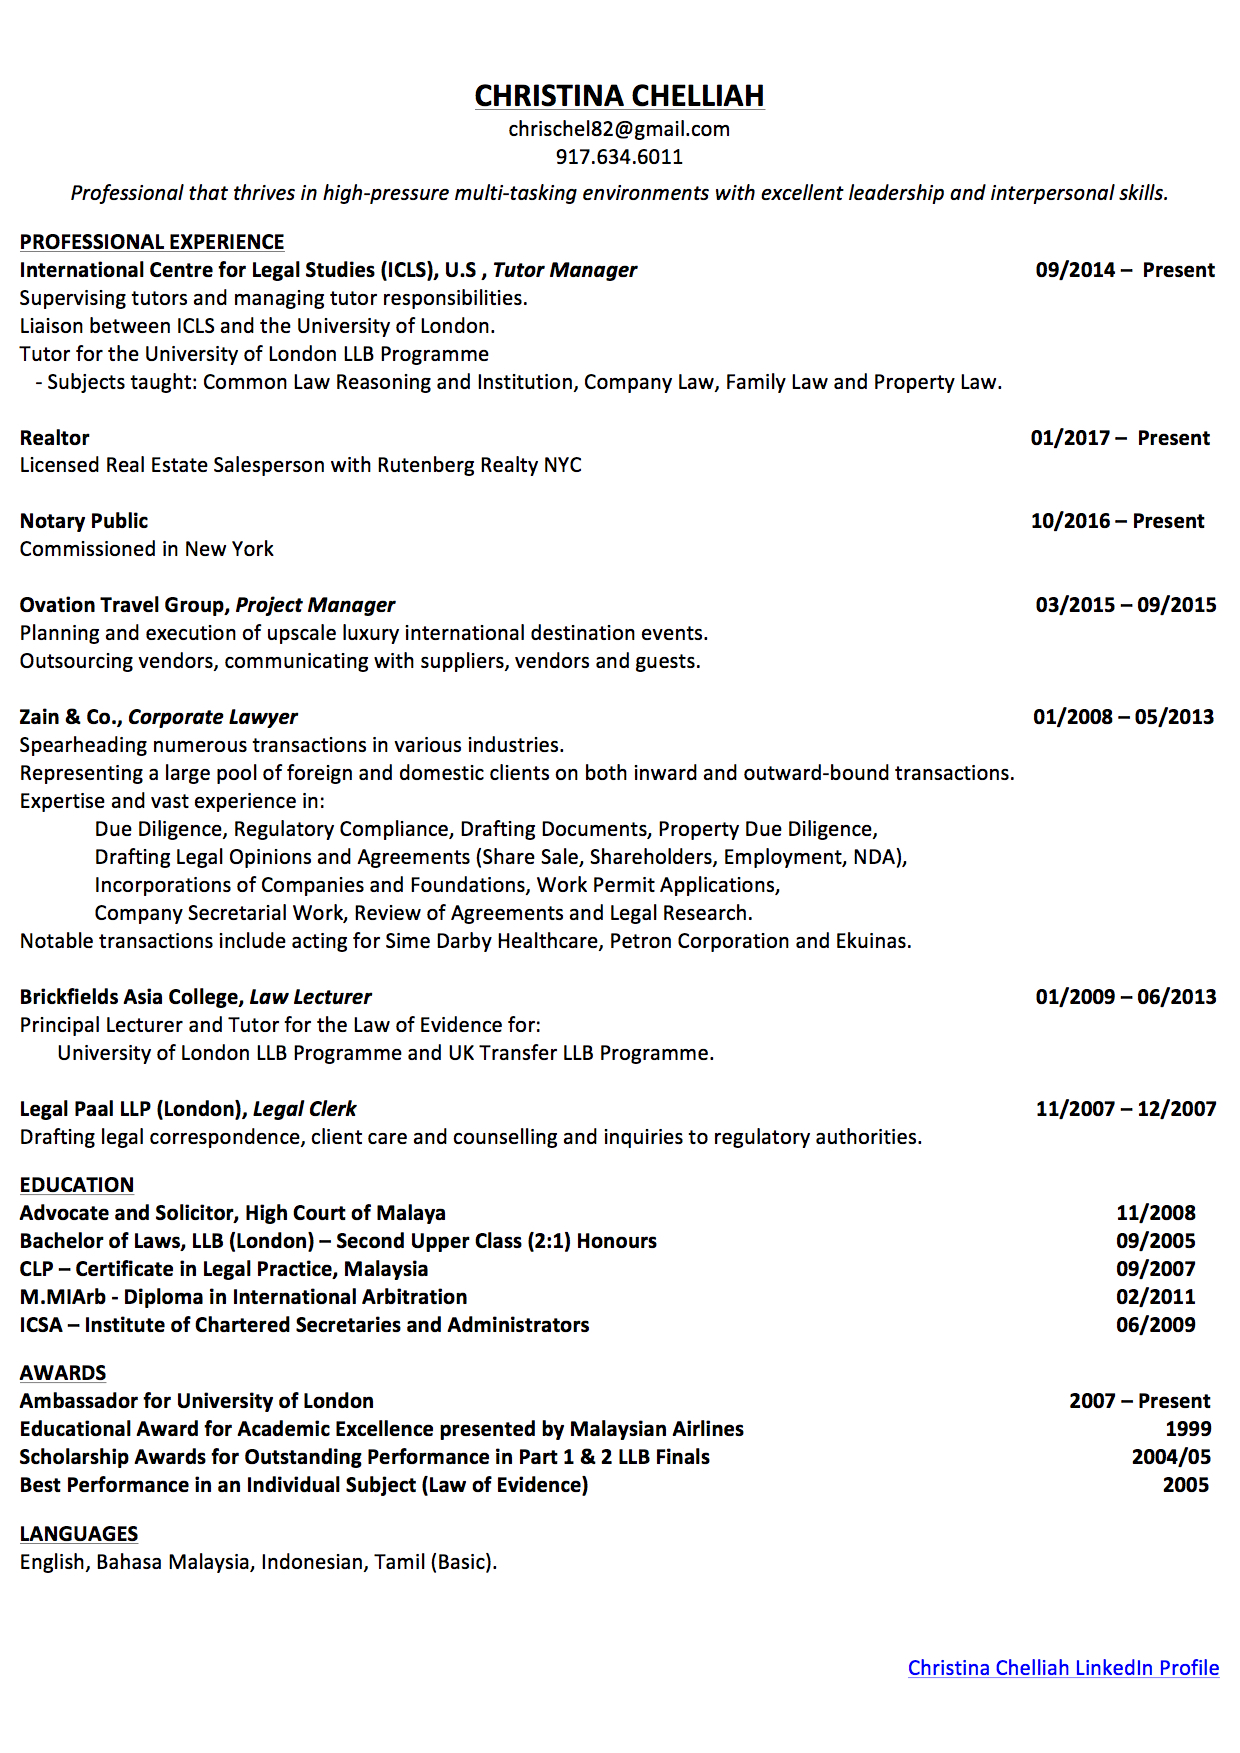 Christina Chelliah - Resume February 2017.jpg